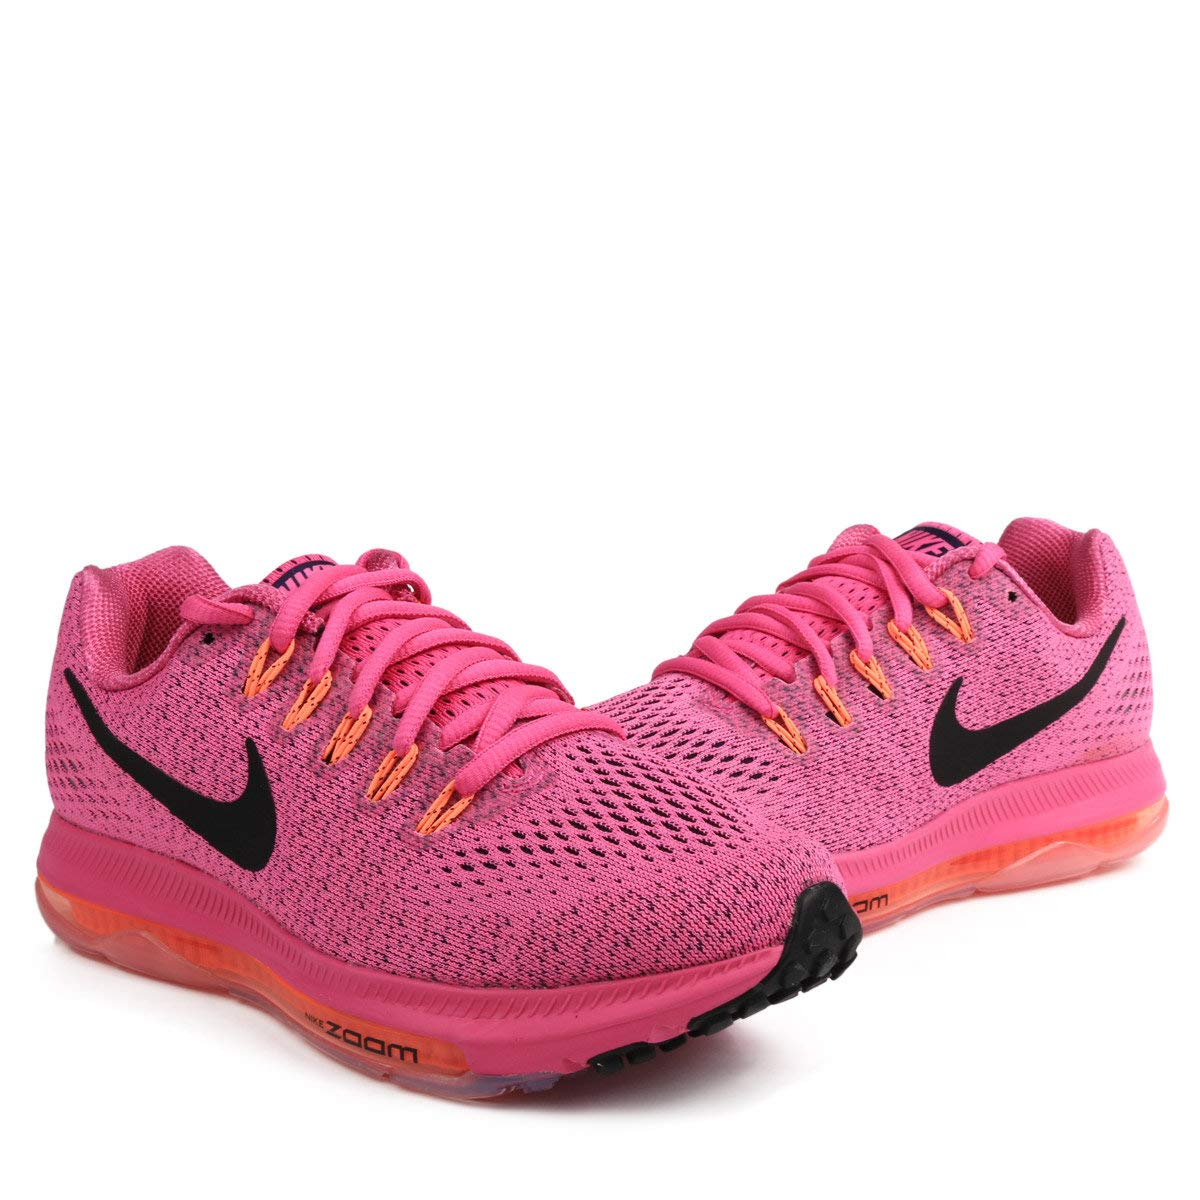 differently 6d366 ff1b5 Galleon - NIKE Women s Zoom All Out Low Running Shoes, 12 B(M) US, Fire Pink  Black - Bright Mango